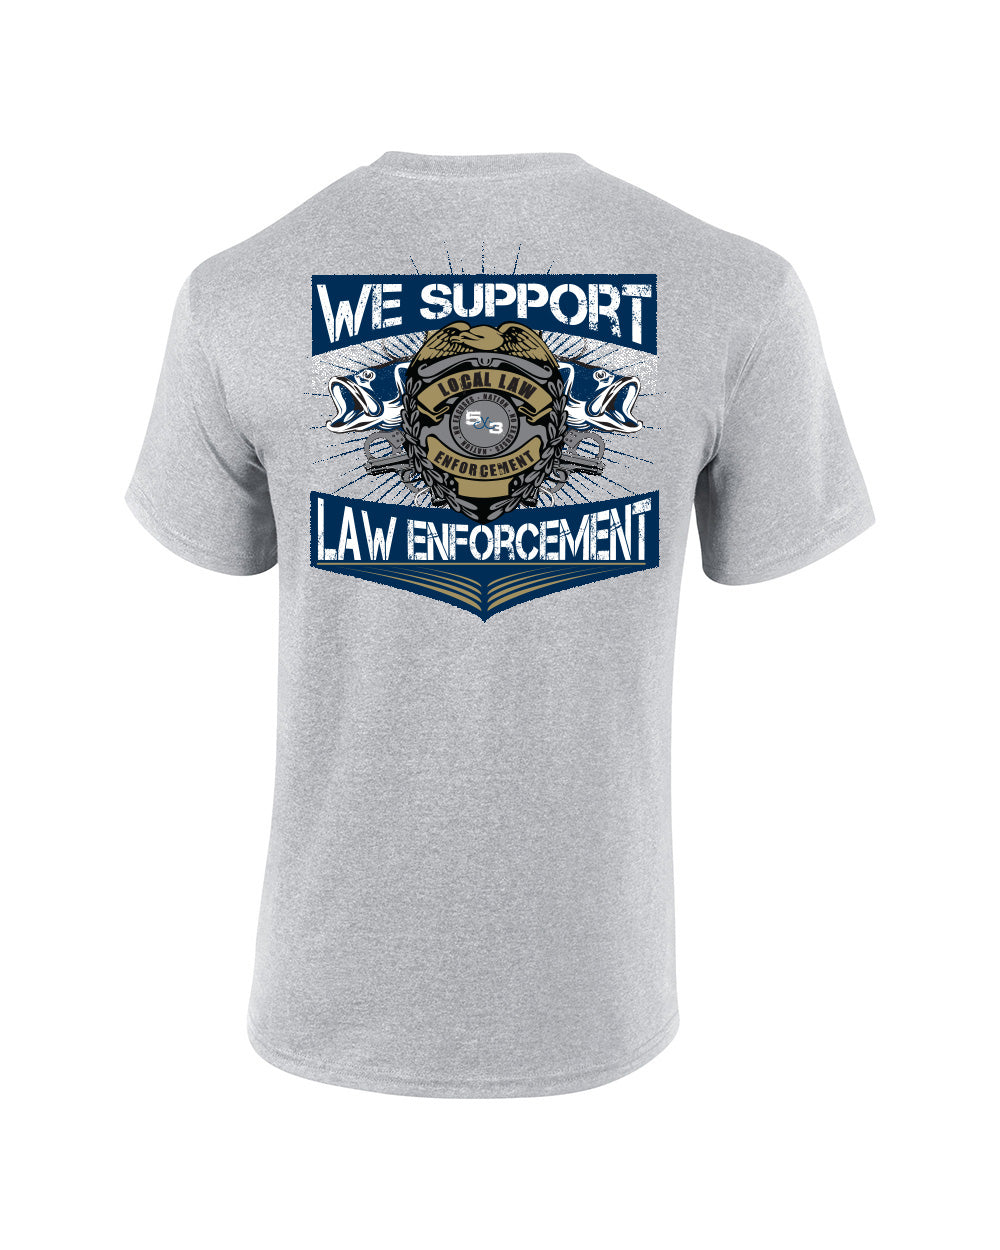 Law Enforcement Short Sleeve T-Shirt